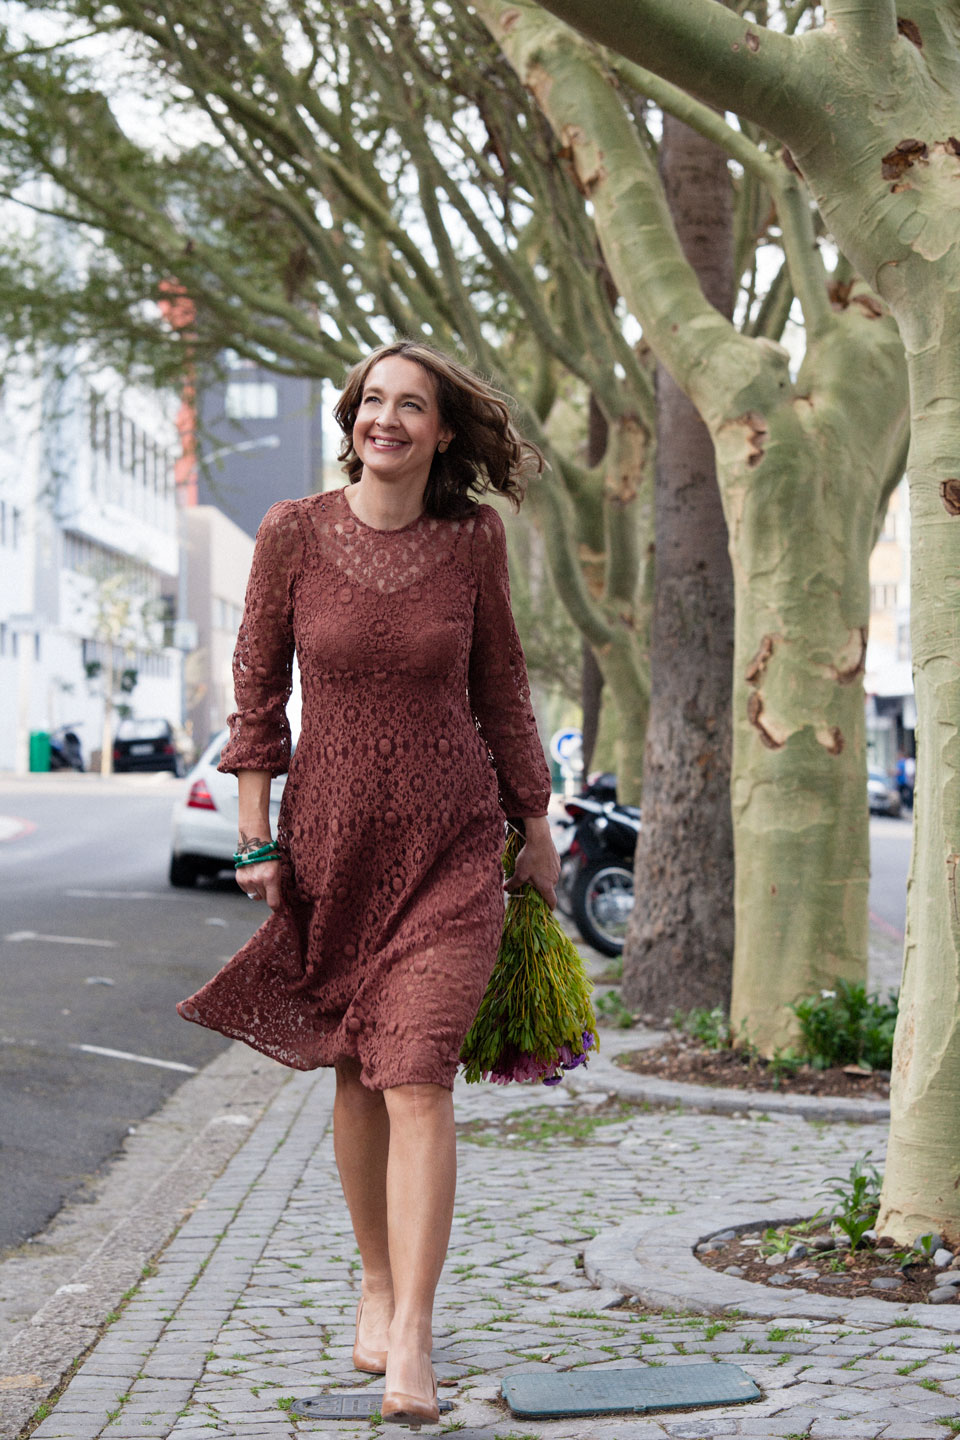 Personal Branding Photo Shoot in Cape Town City Centre by Abigail K